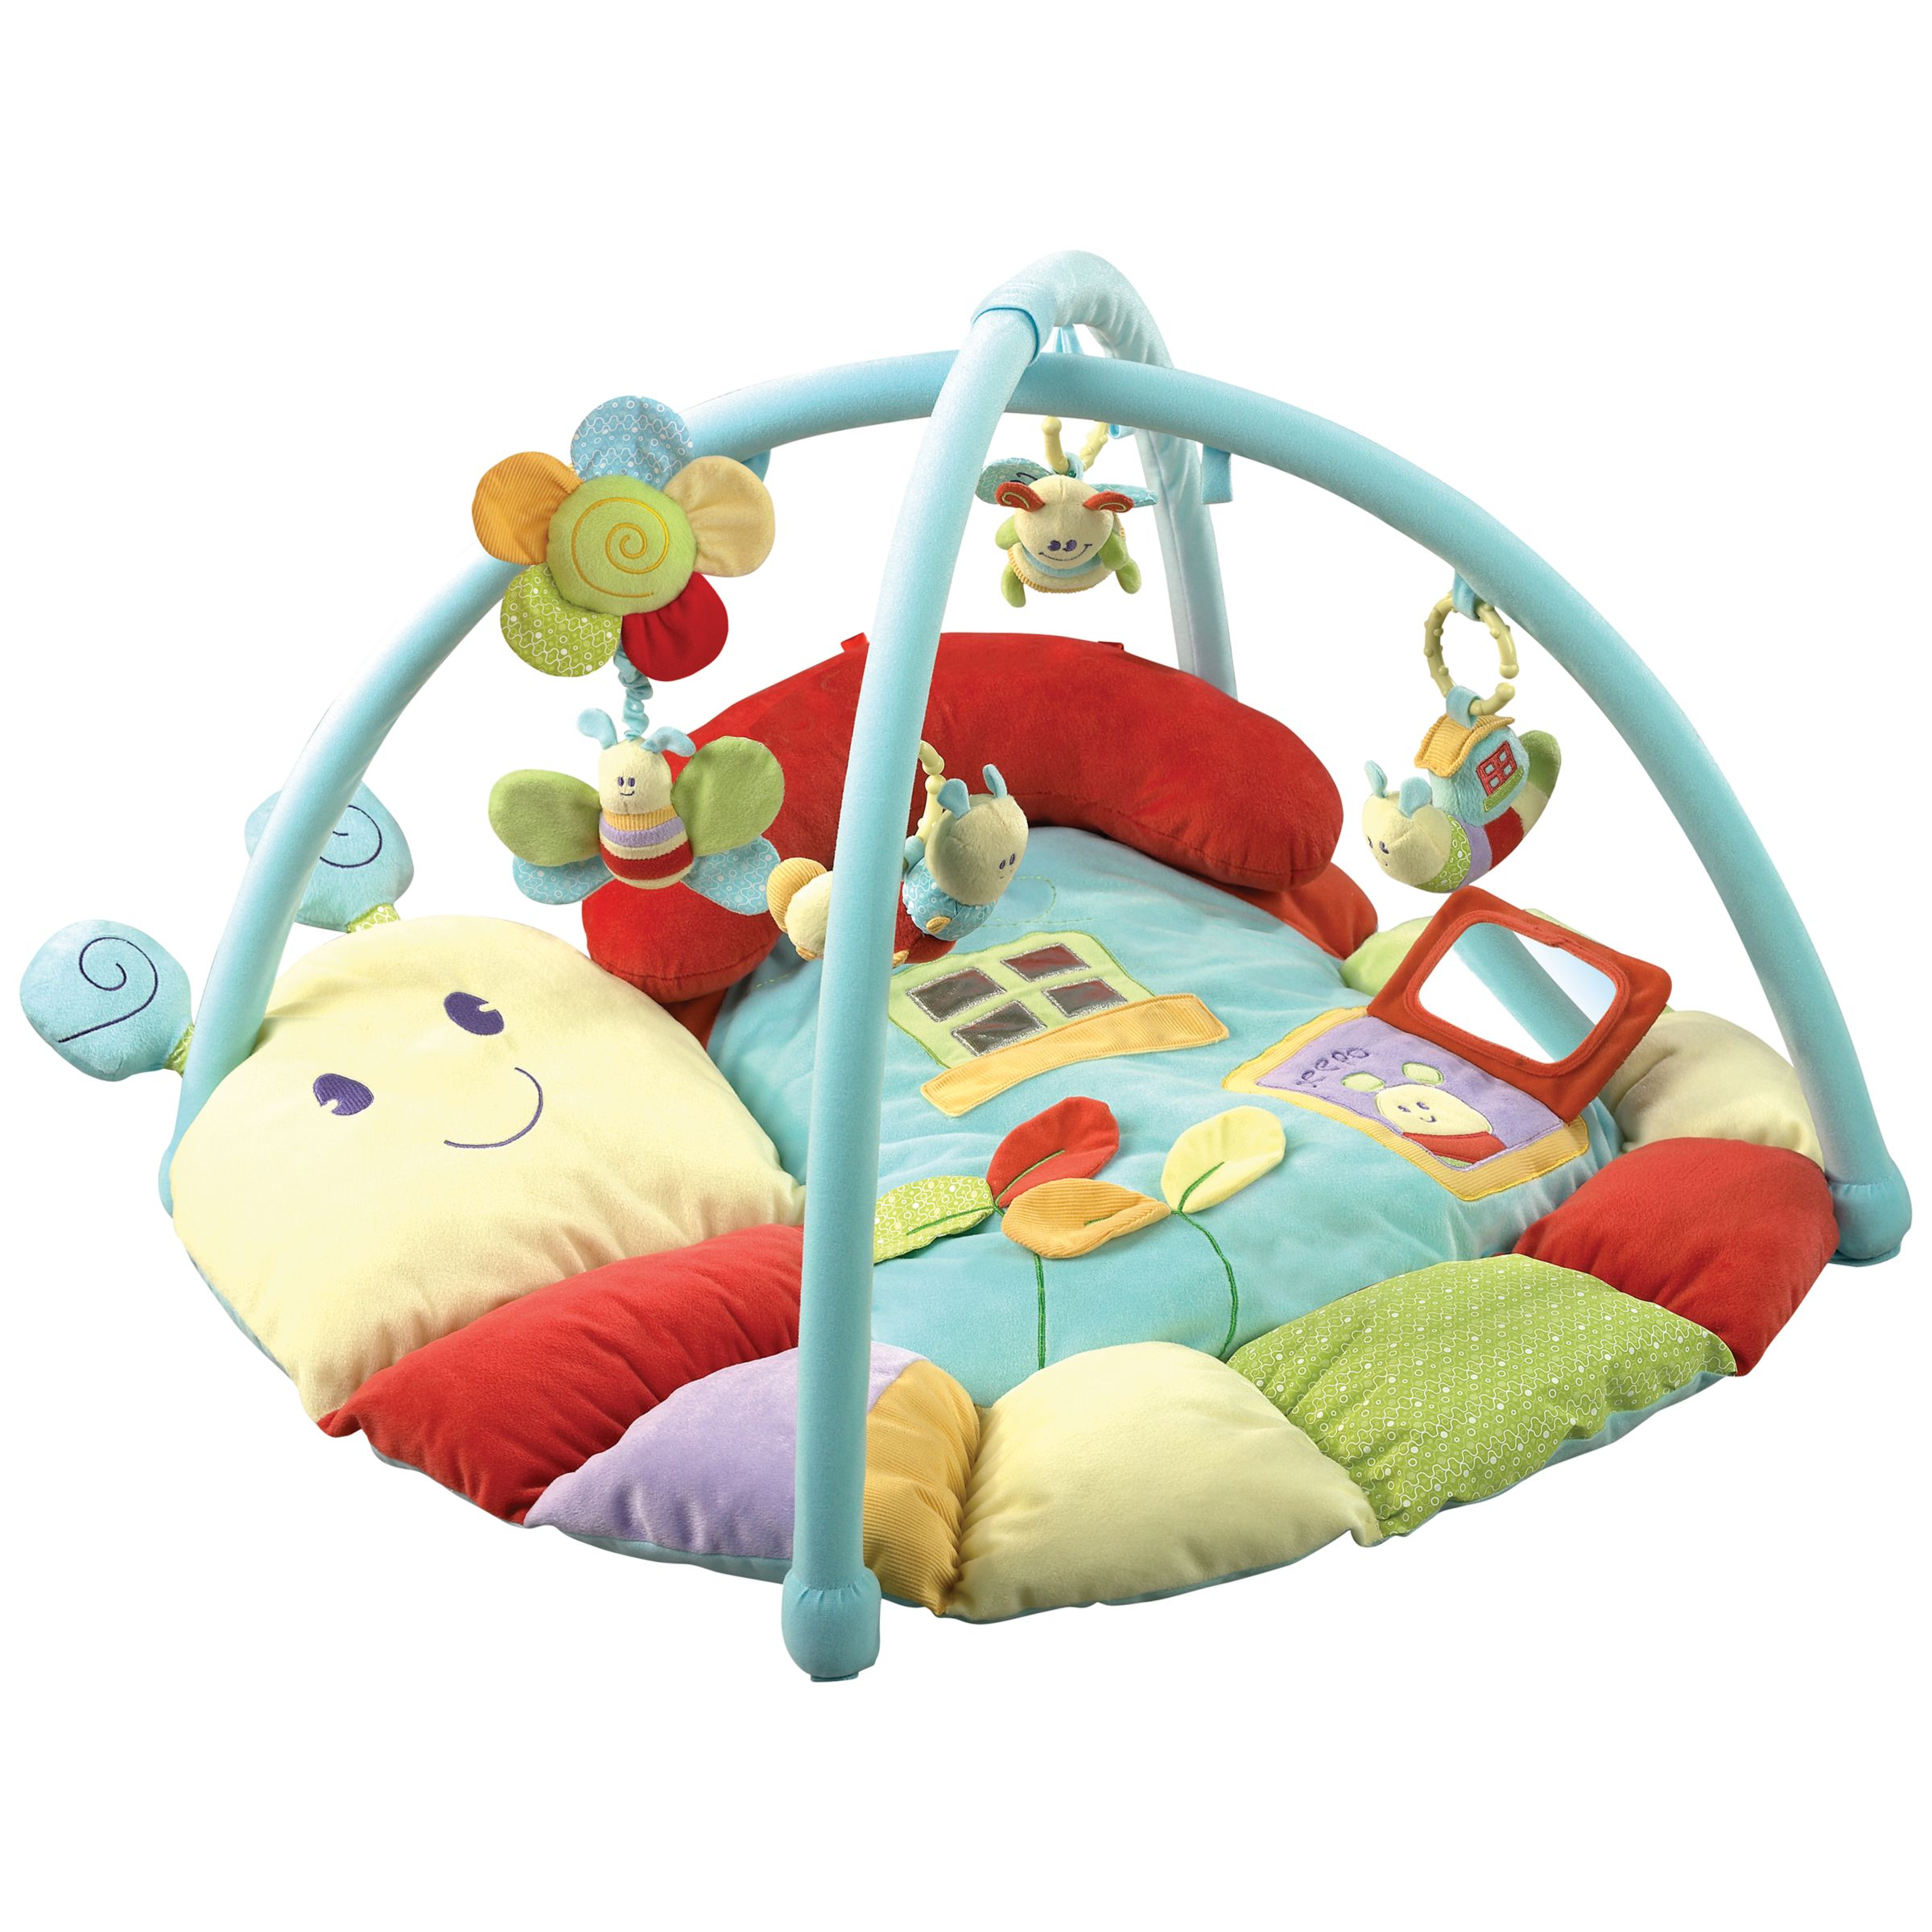 Little Bird Told Me Little Bird Told Me Softly Snail Multi-Activity Baby Playmat and Gym